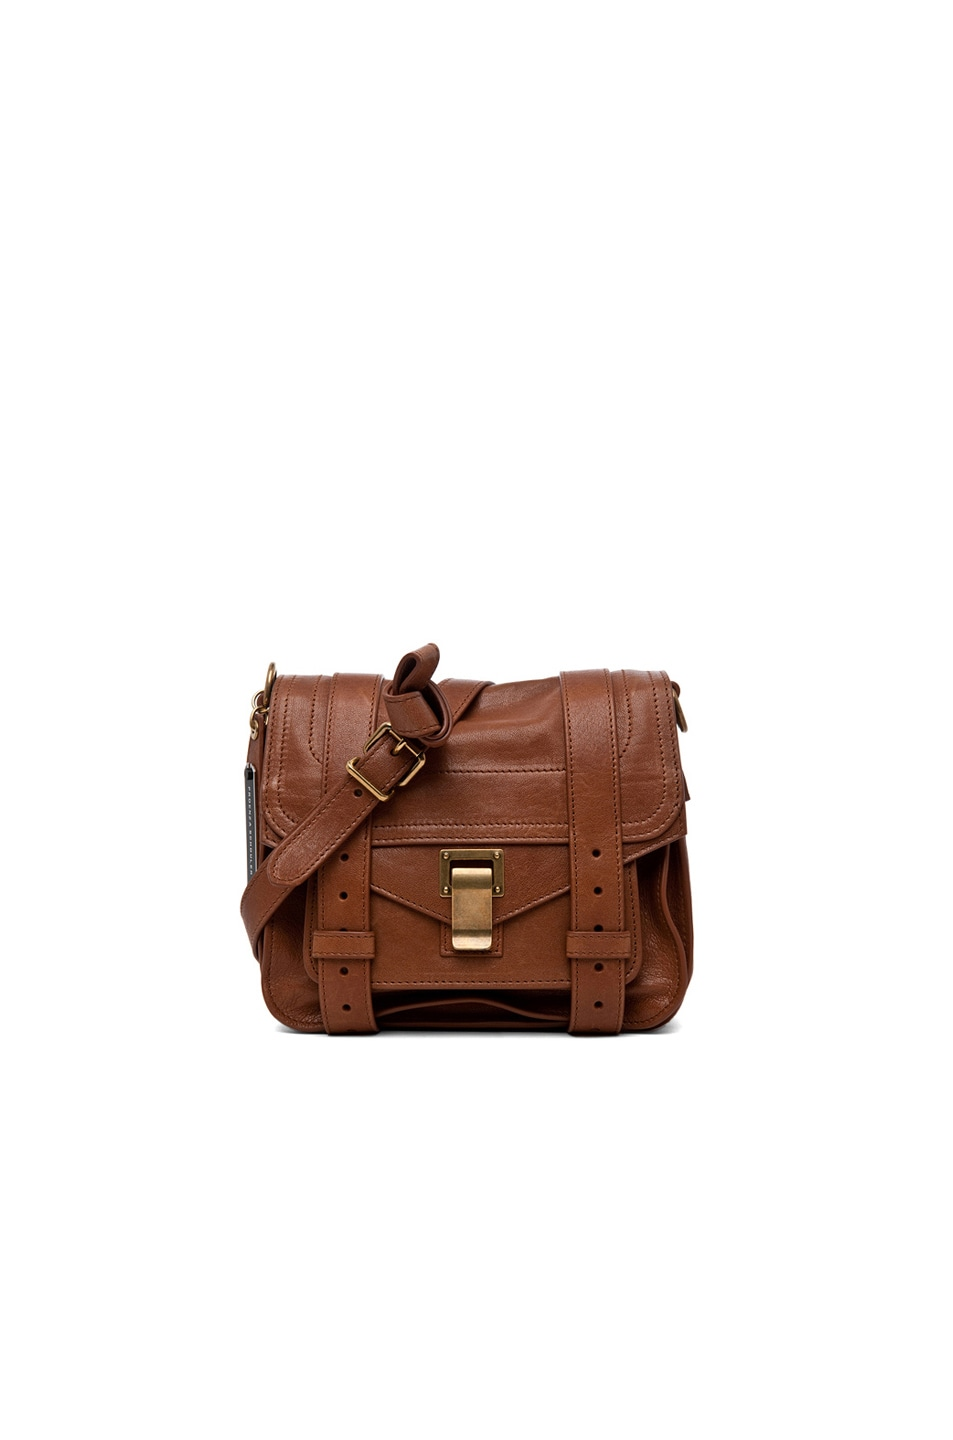 Image 1 of Proenza Schouler PS1 Leather Pouch in Saddle